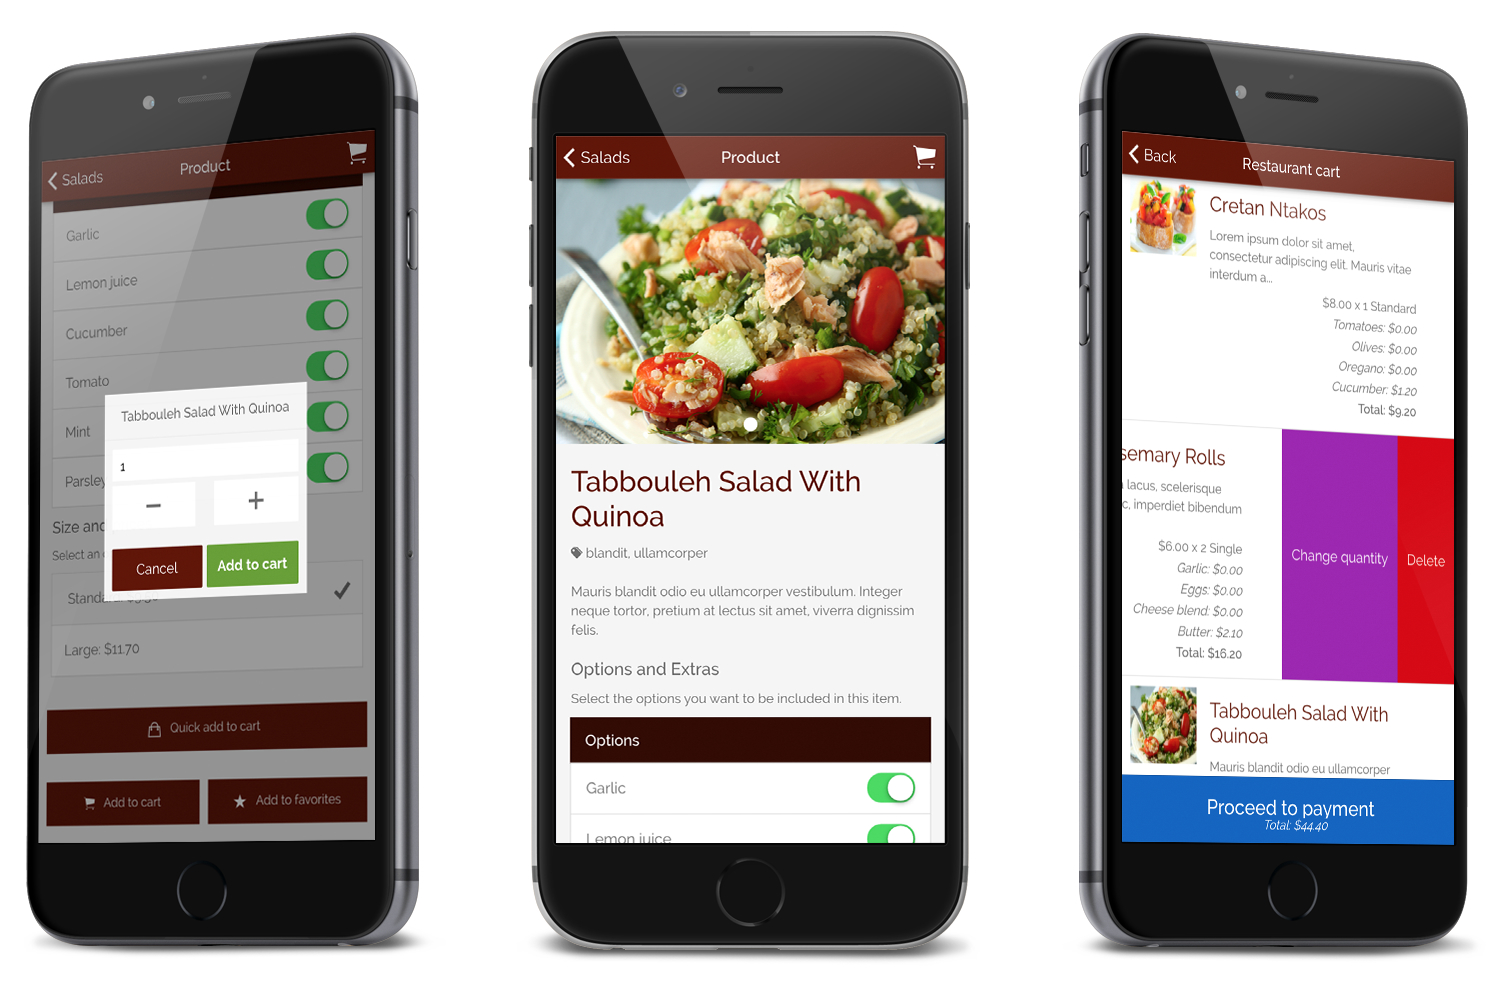 Restaurant-ionic-classy--full-application-with-firebase